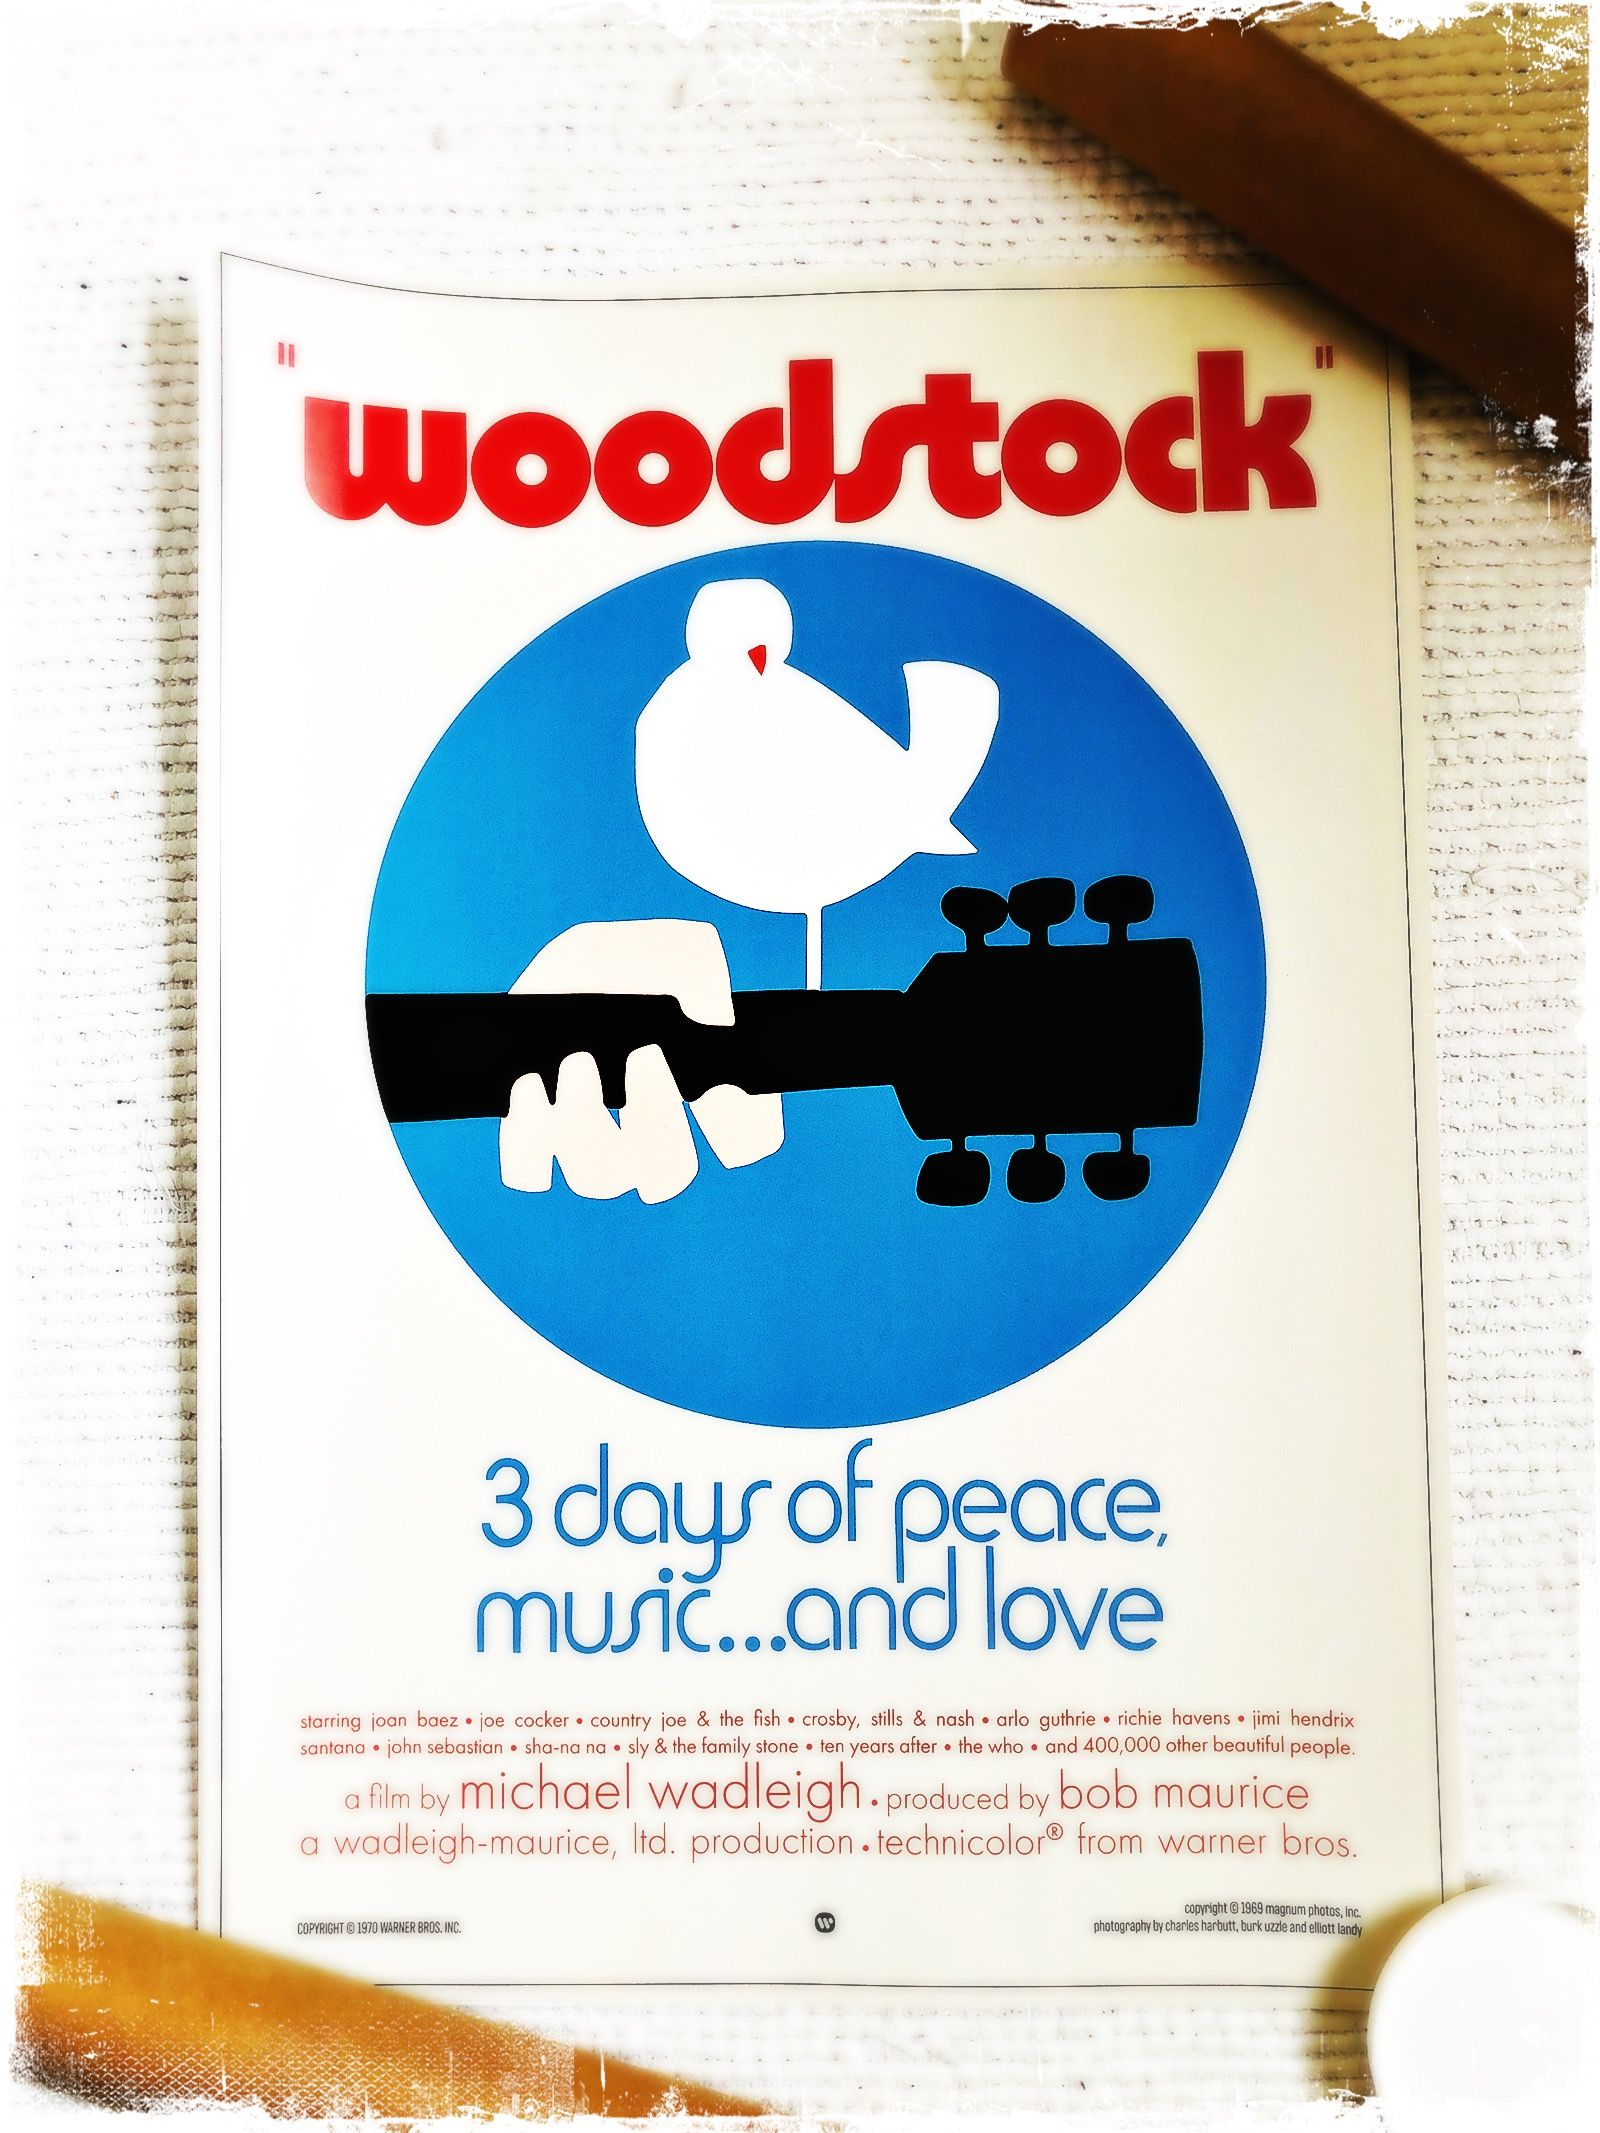 Woodstock Movie Poster A2 420 X 594 Mm 16 5 X 23 4 Inch Ebay In 2020 Woodstock Music Woodstock Movie Posters